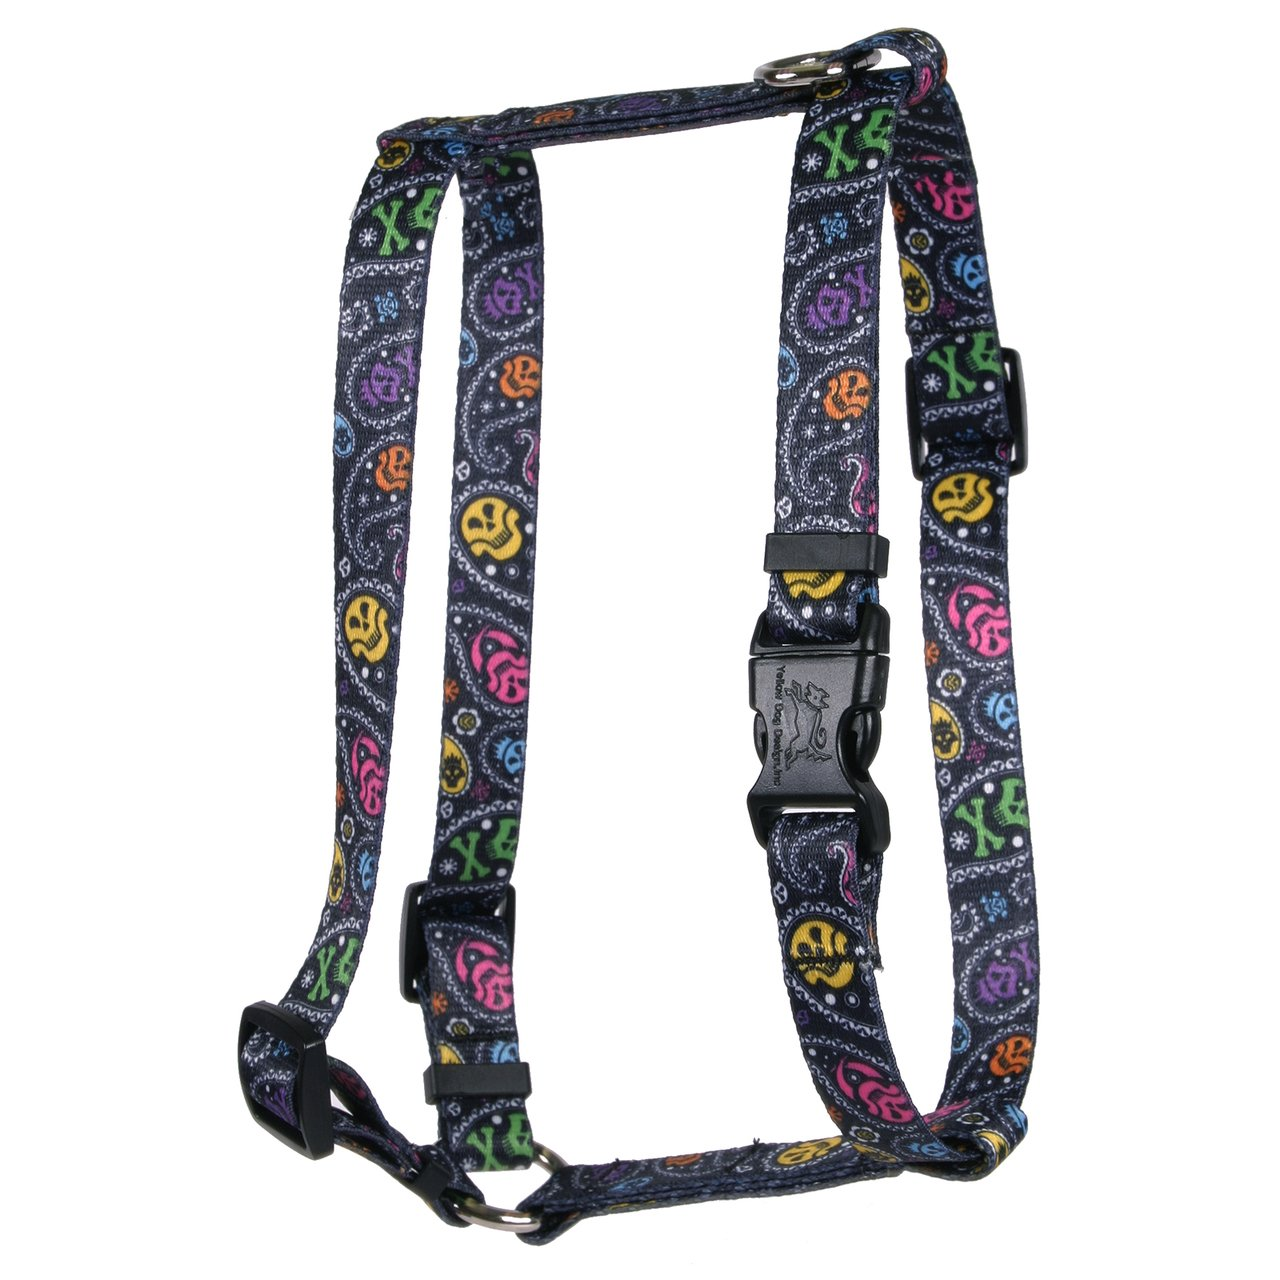 Yellow Dog Design Paisley Skulls Multi Roman Style H Dog Harness, X-Large-1'' Wide fits Chest of 28 to 36'' by Yellow Dog Design